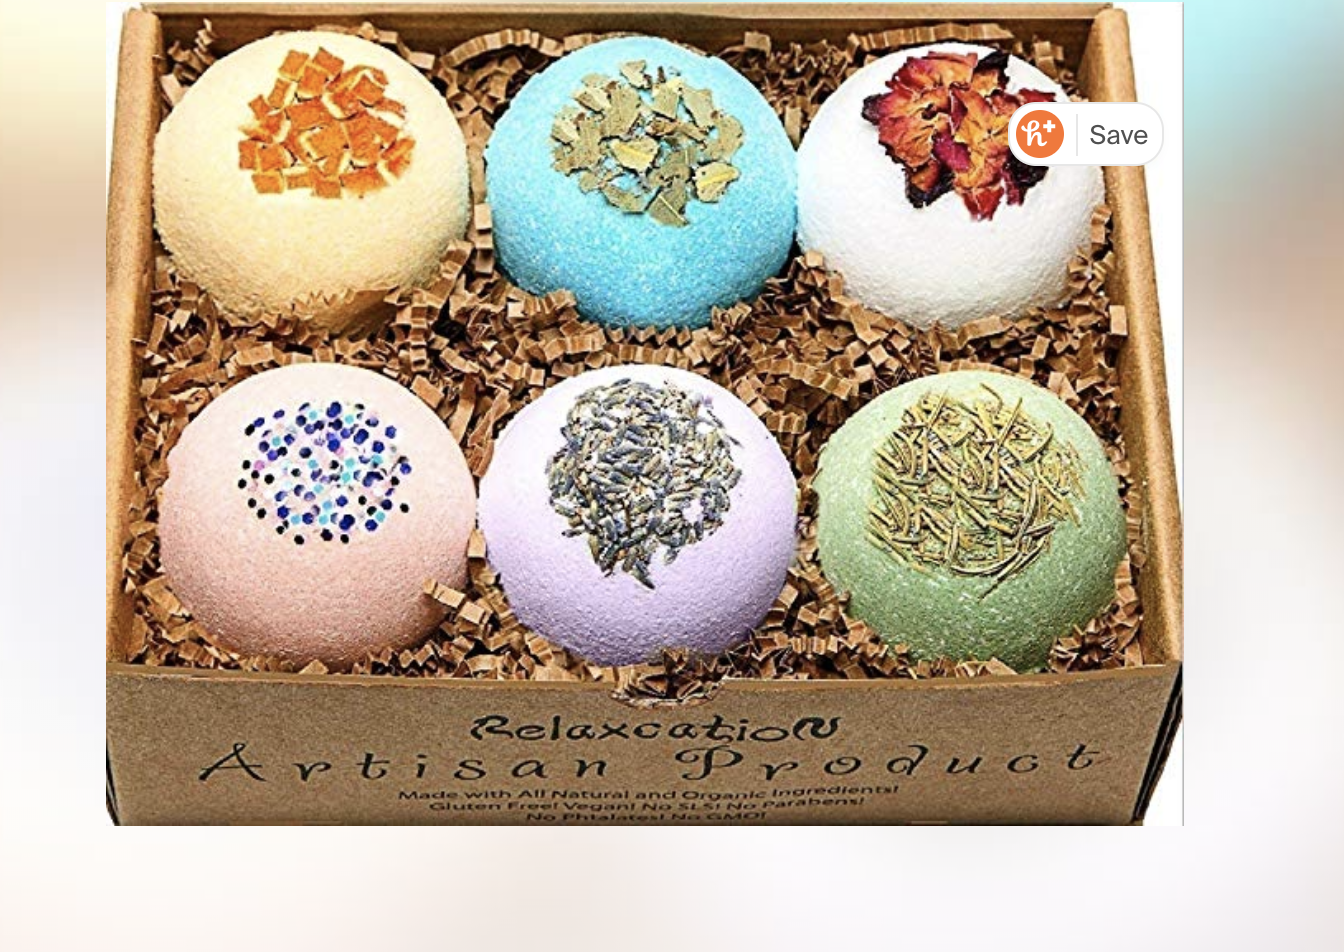 Relaxacation Organic Bath Bomb Gift Set